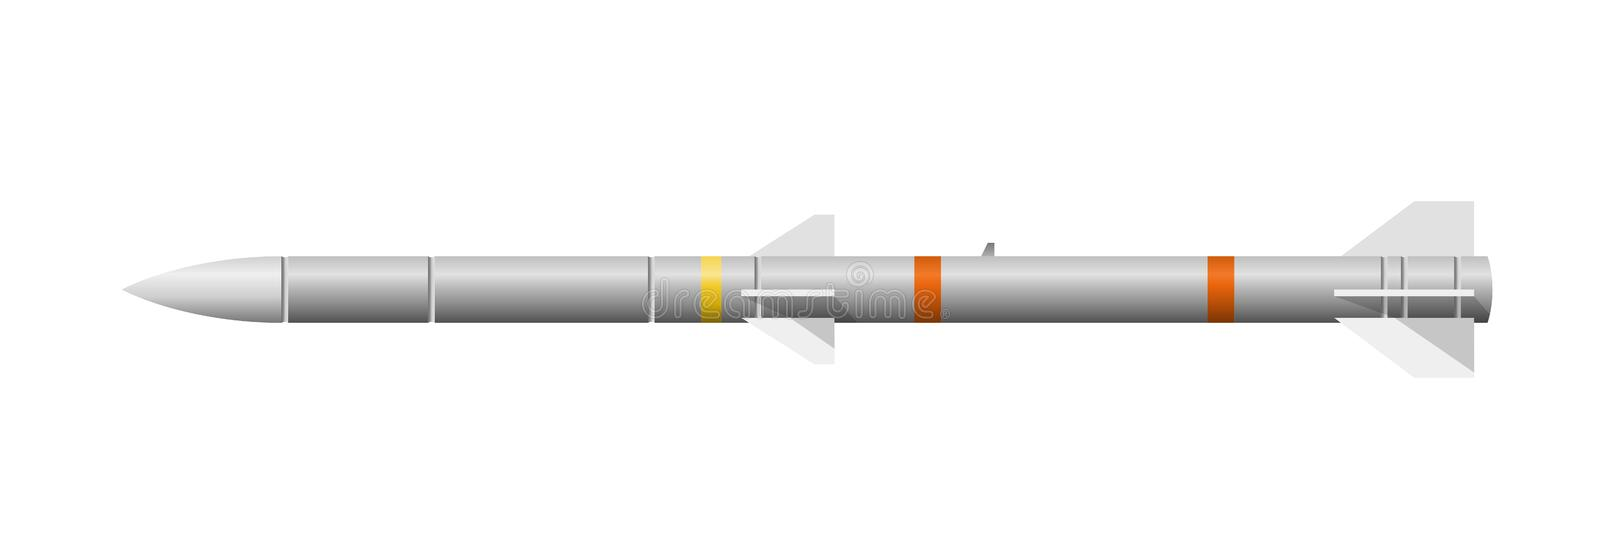 Missile. Illustration of air-to-air missile. Vector available stock illustration